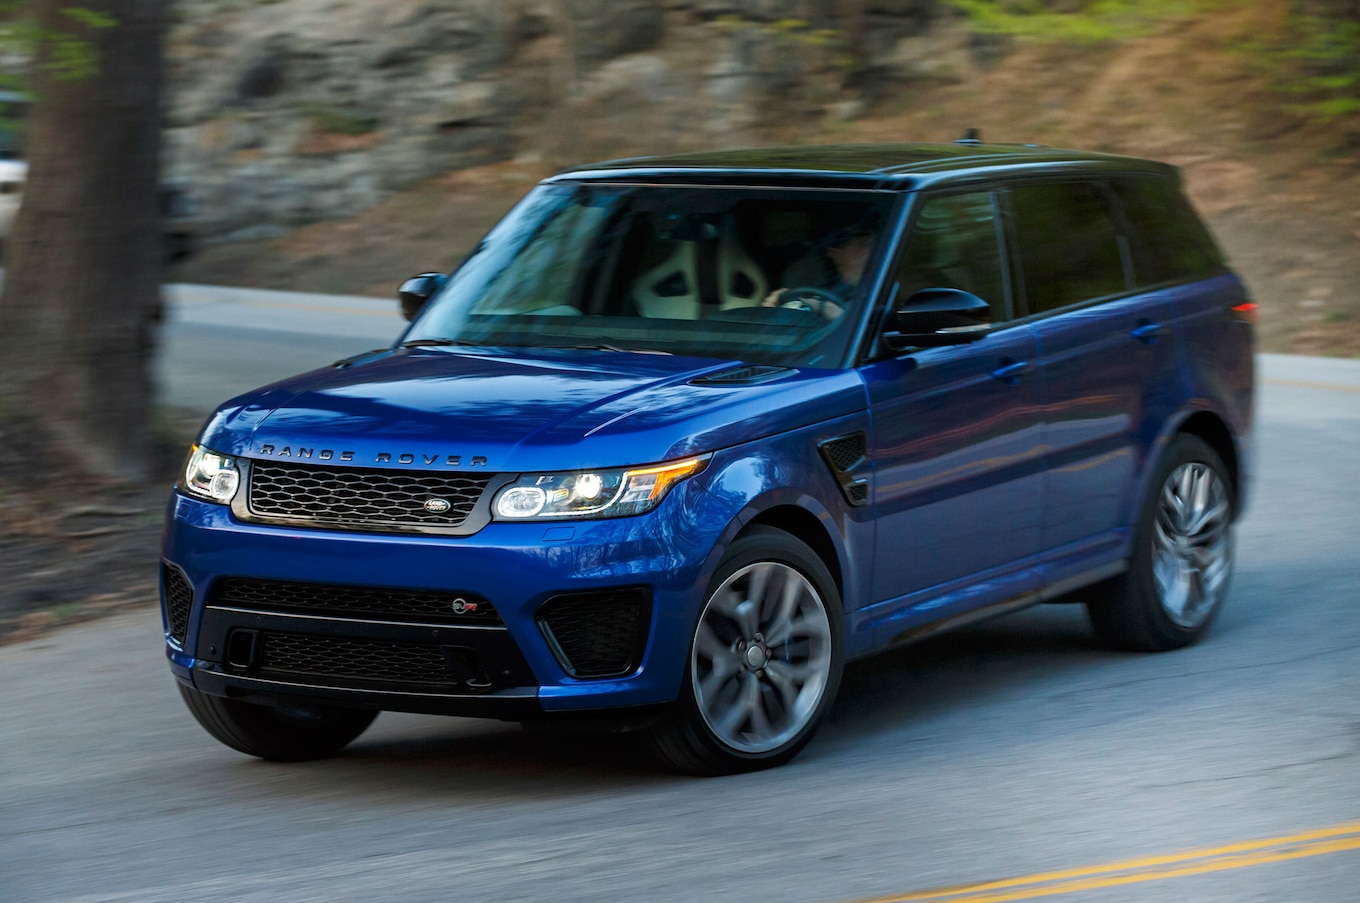 2015 Land Rover Range Rover Sport SVR First Drive Review Motor